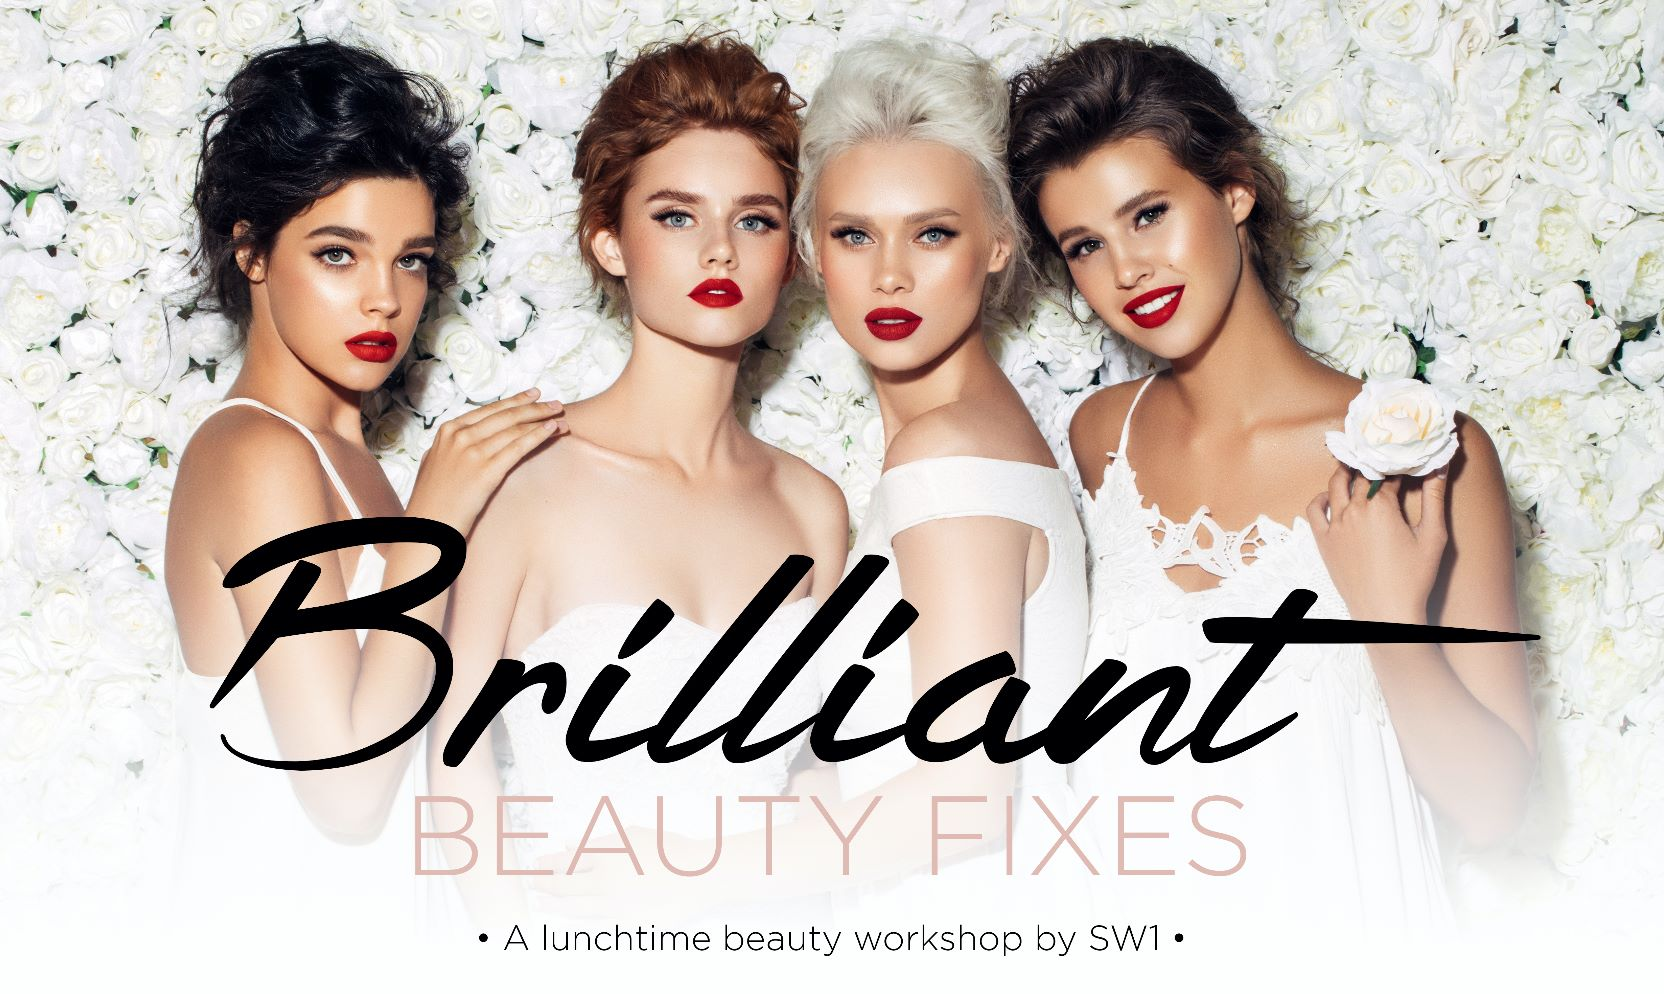 A lunchtime beauty workshop by SW1